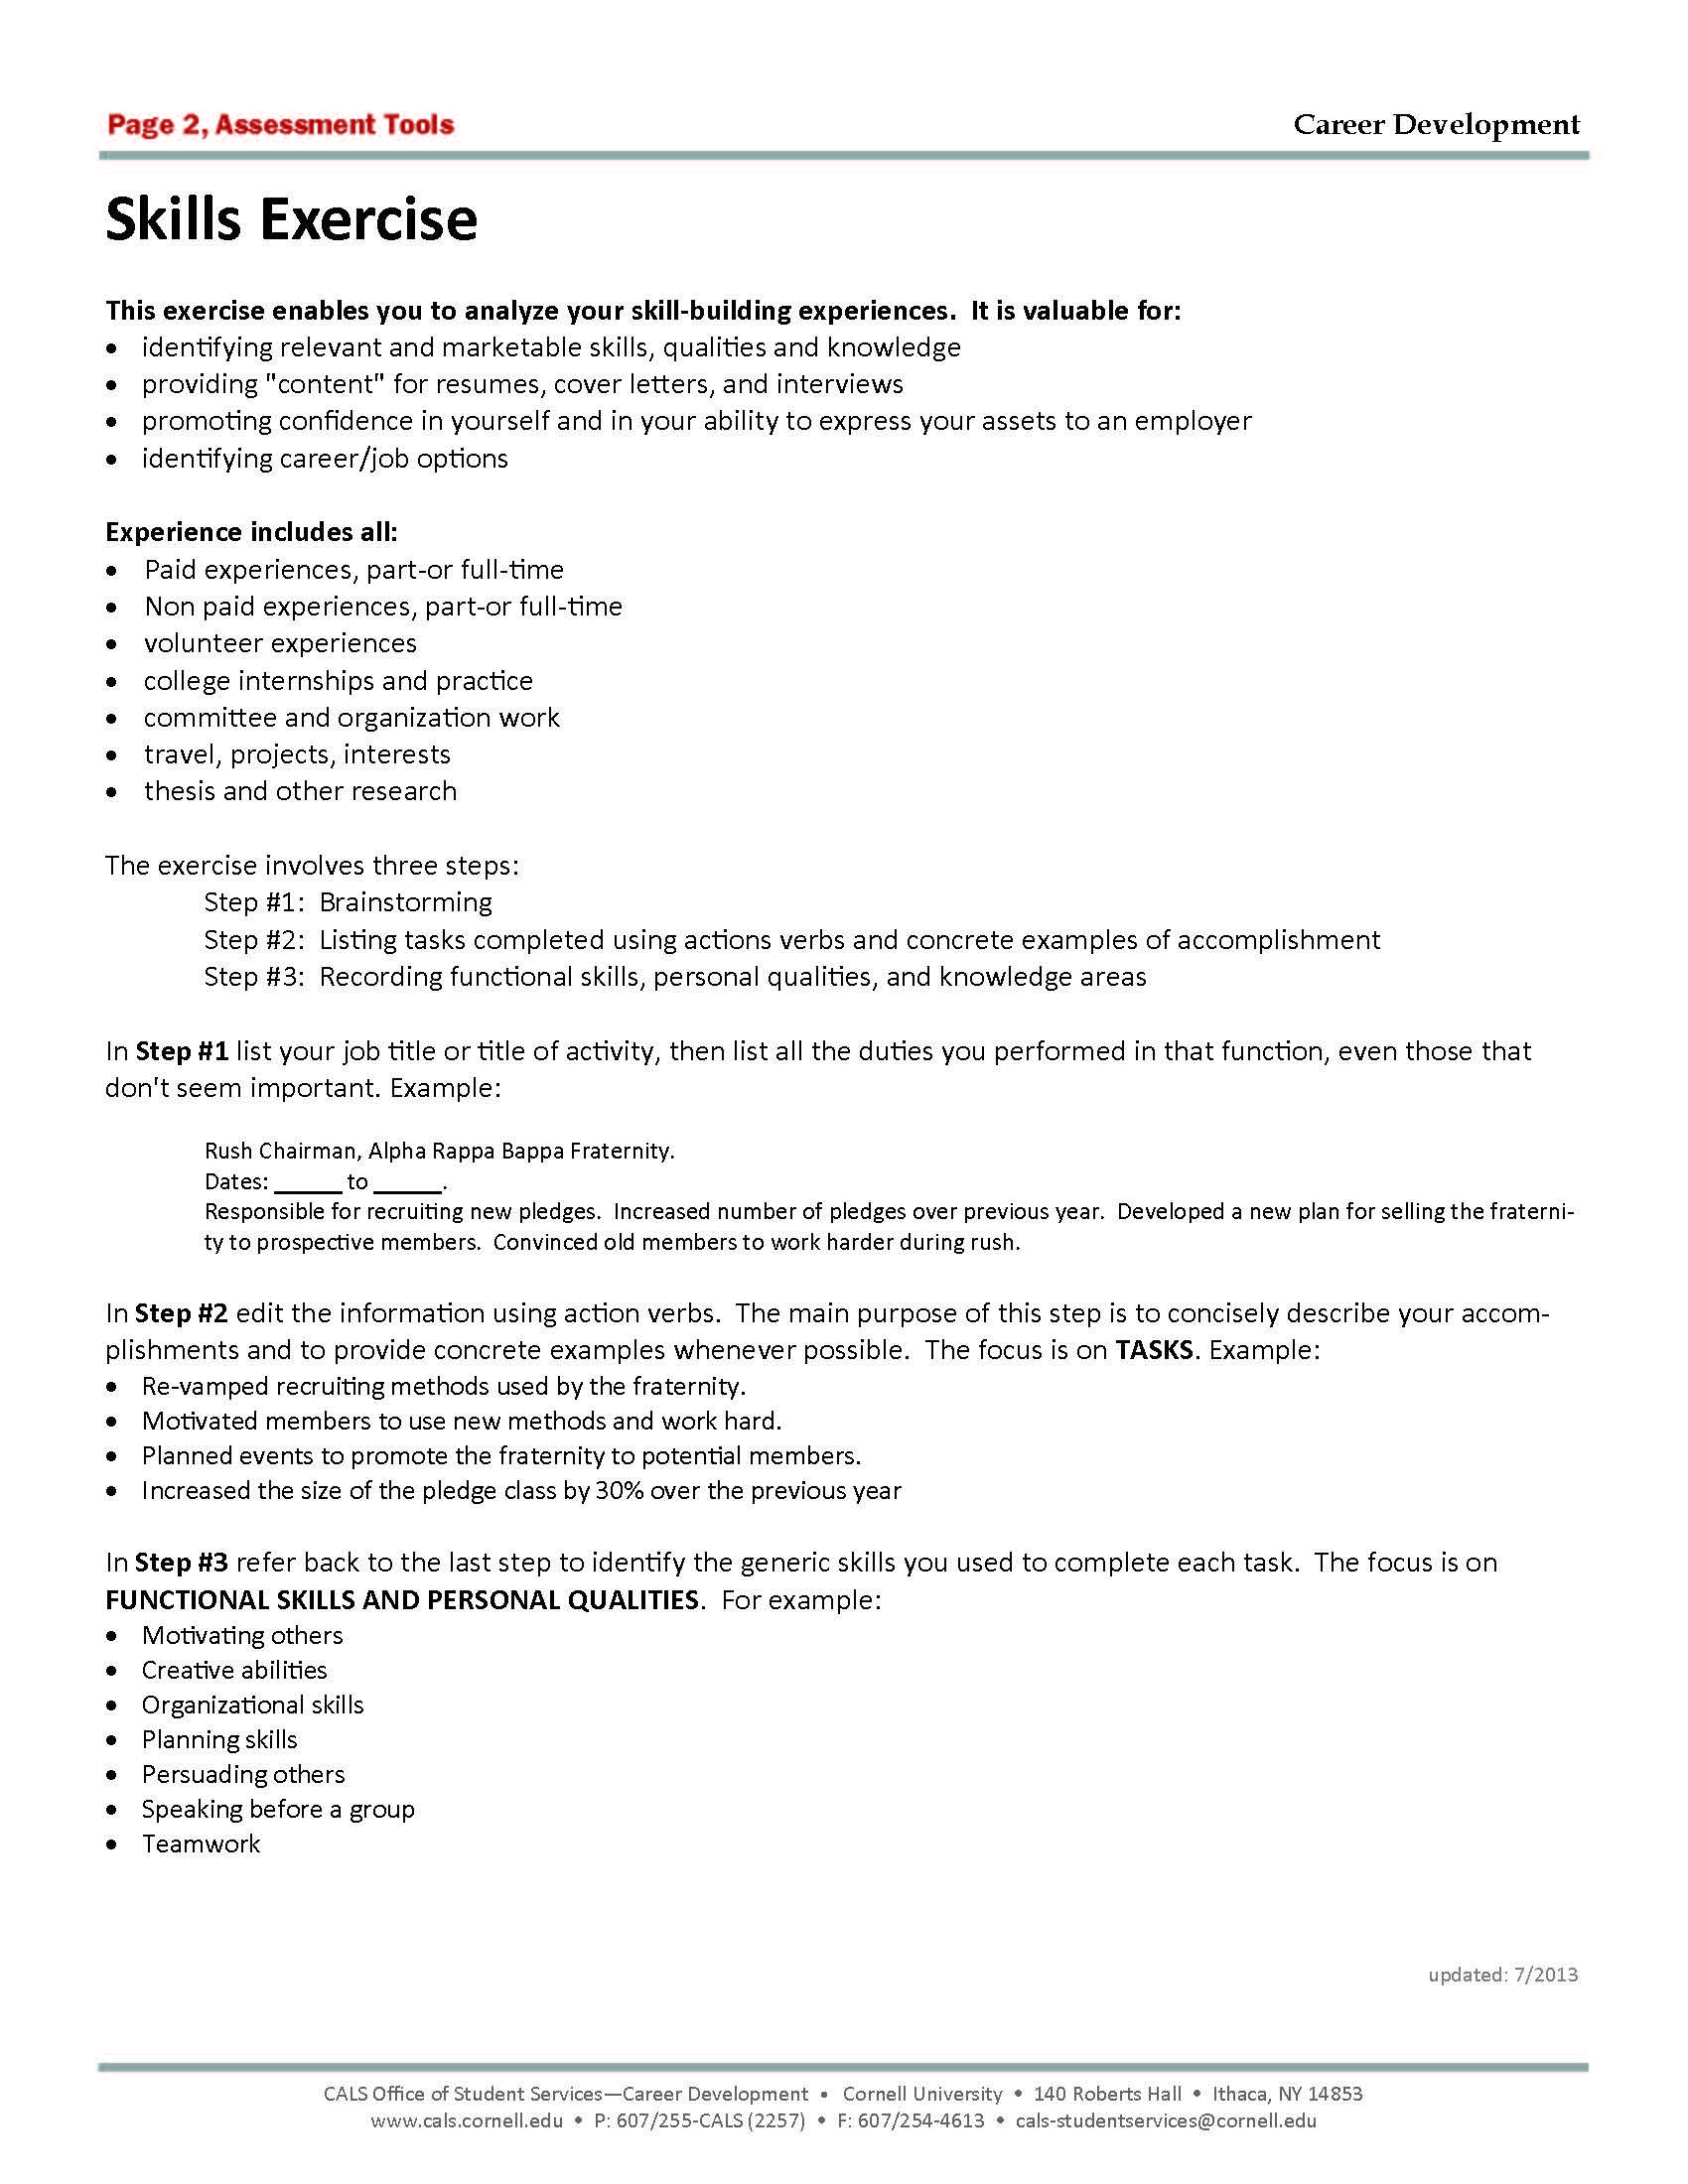 Do This Great Exercise To Help You Build Better Career Documents And Prepare For Interviews View It Onlin Career Exploration Career Advice Career Development